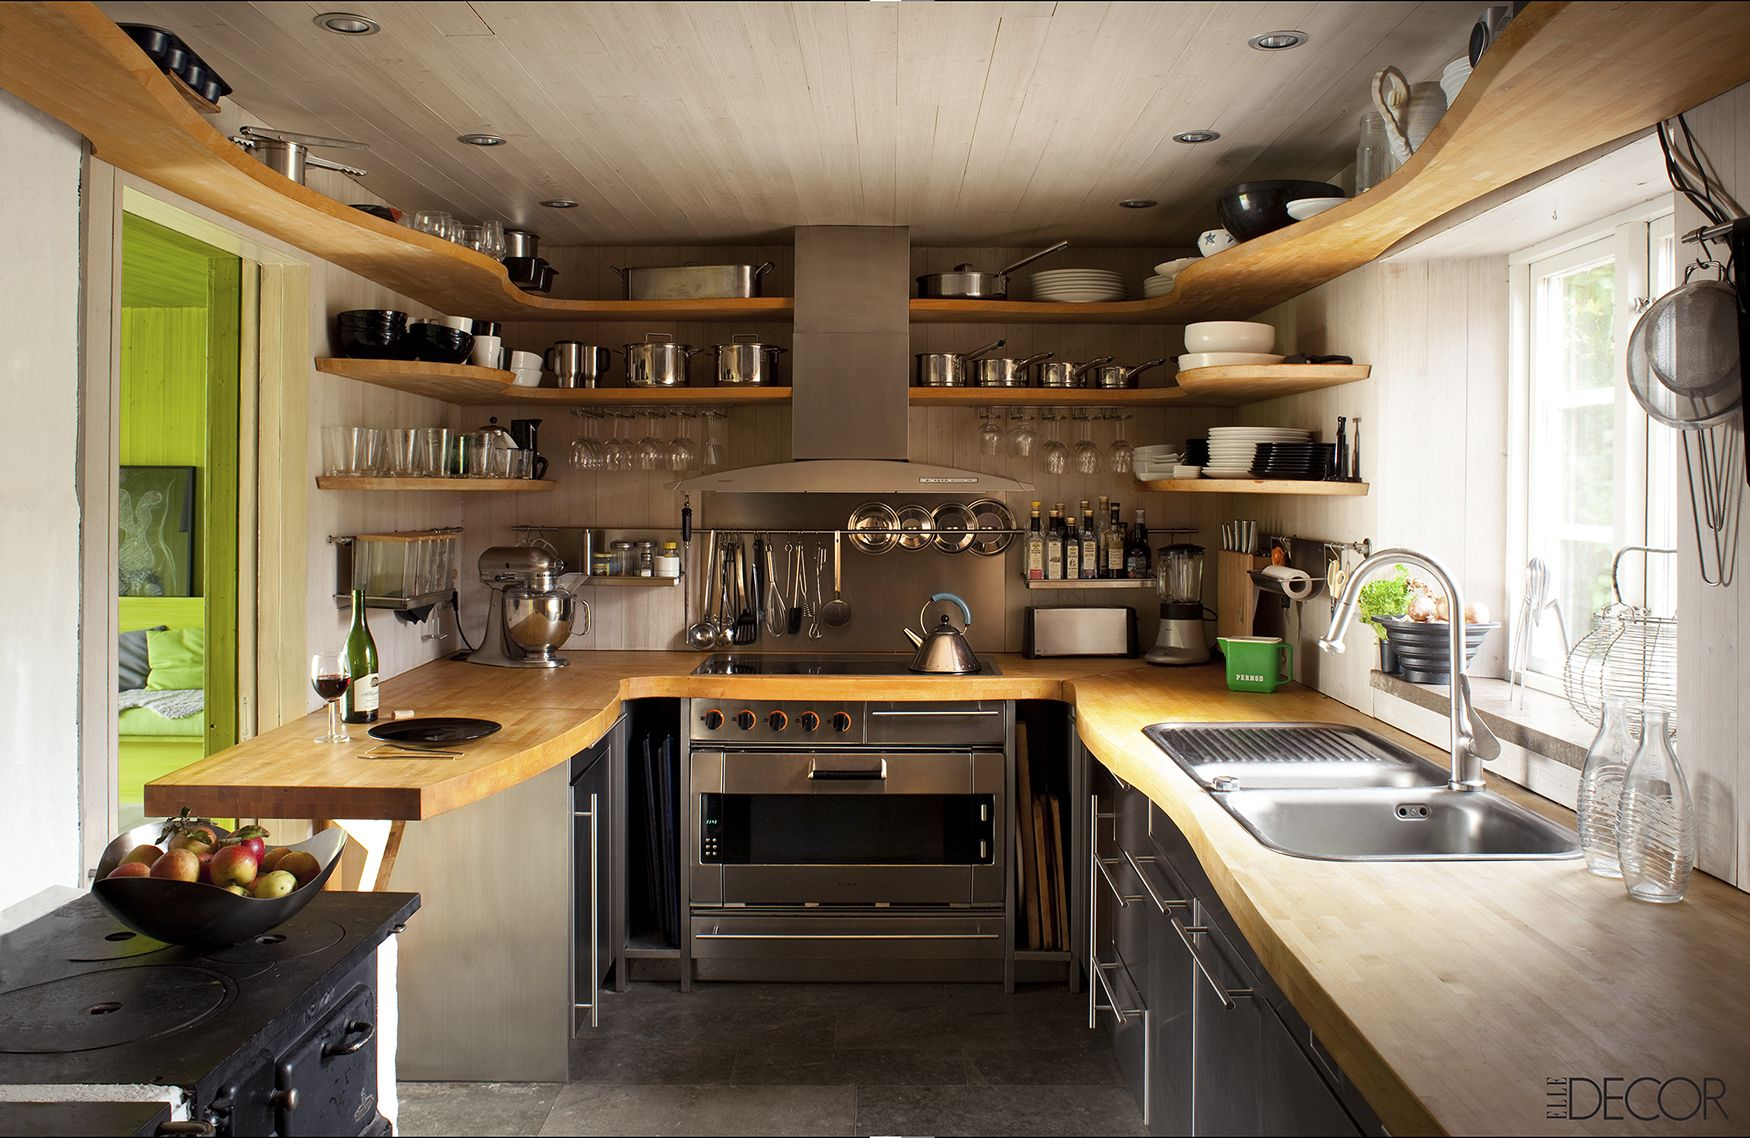 Superb 40 Small Kitchen Design Ideas Decorating Tiny Kitchens Largest Home Design Picture Inspirations Pitcheantrous